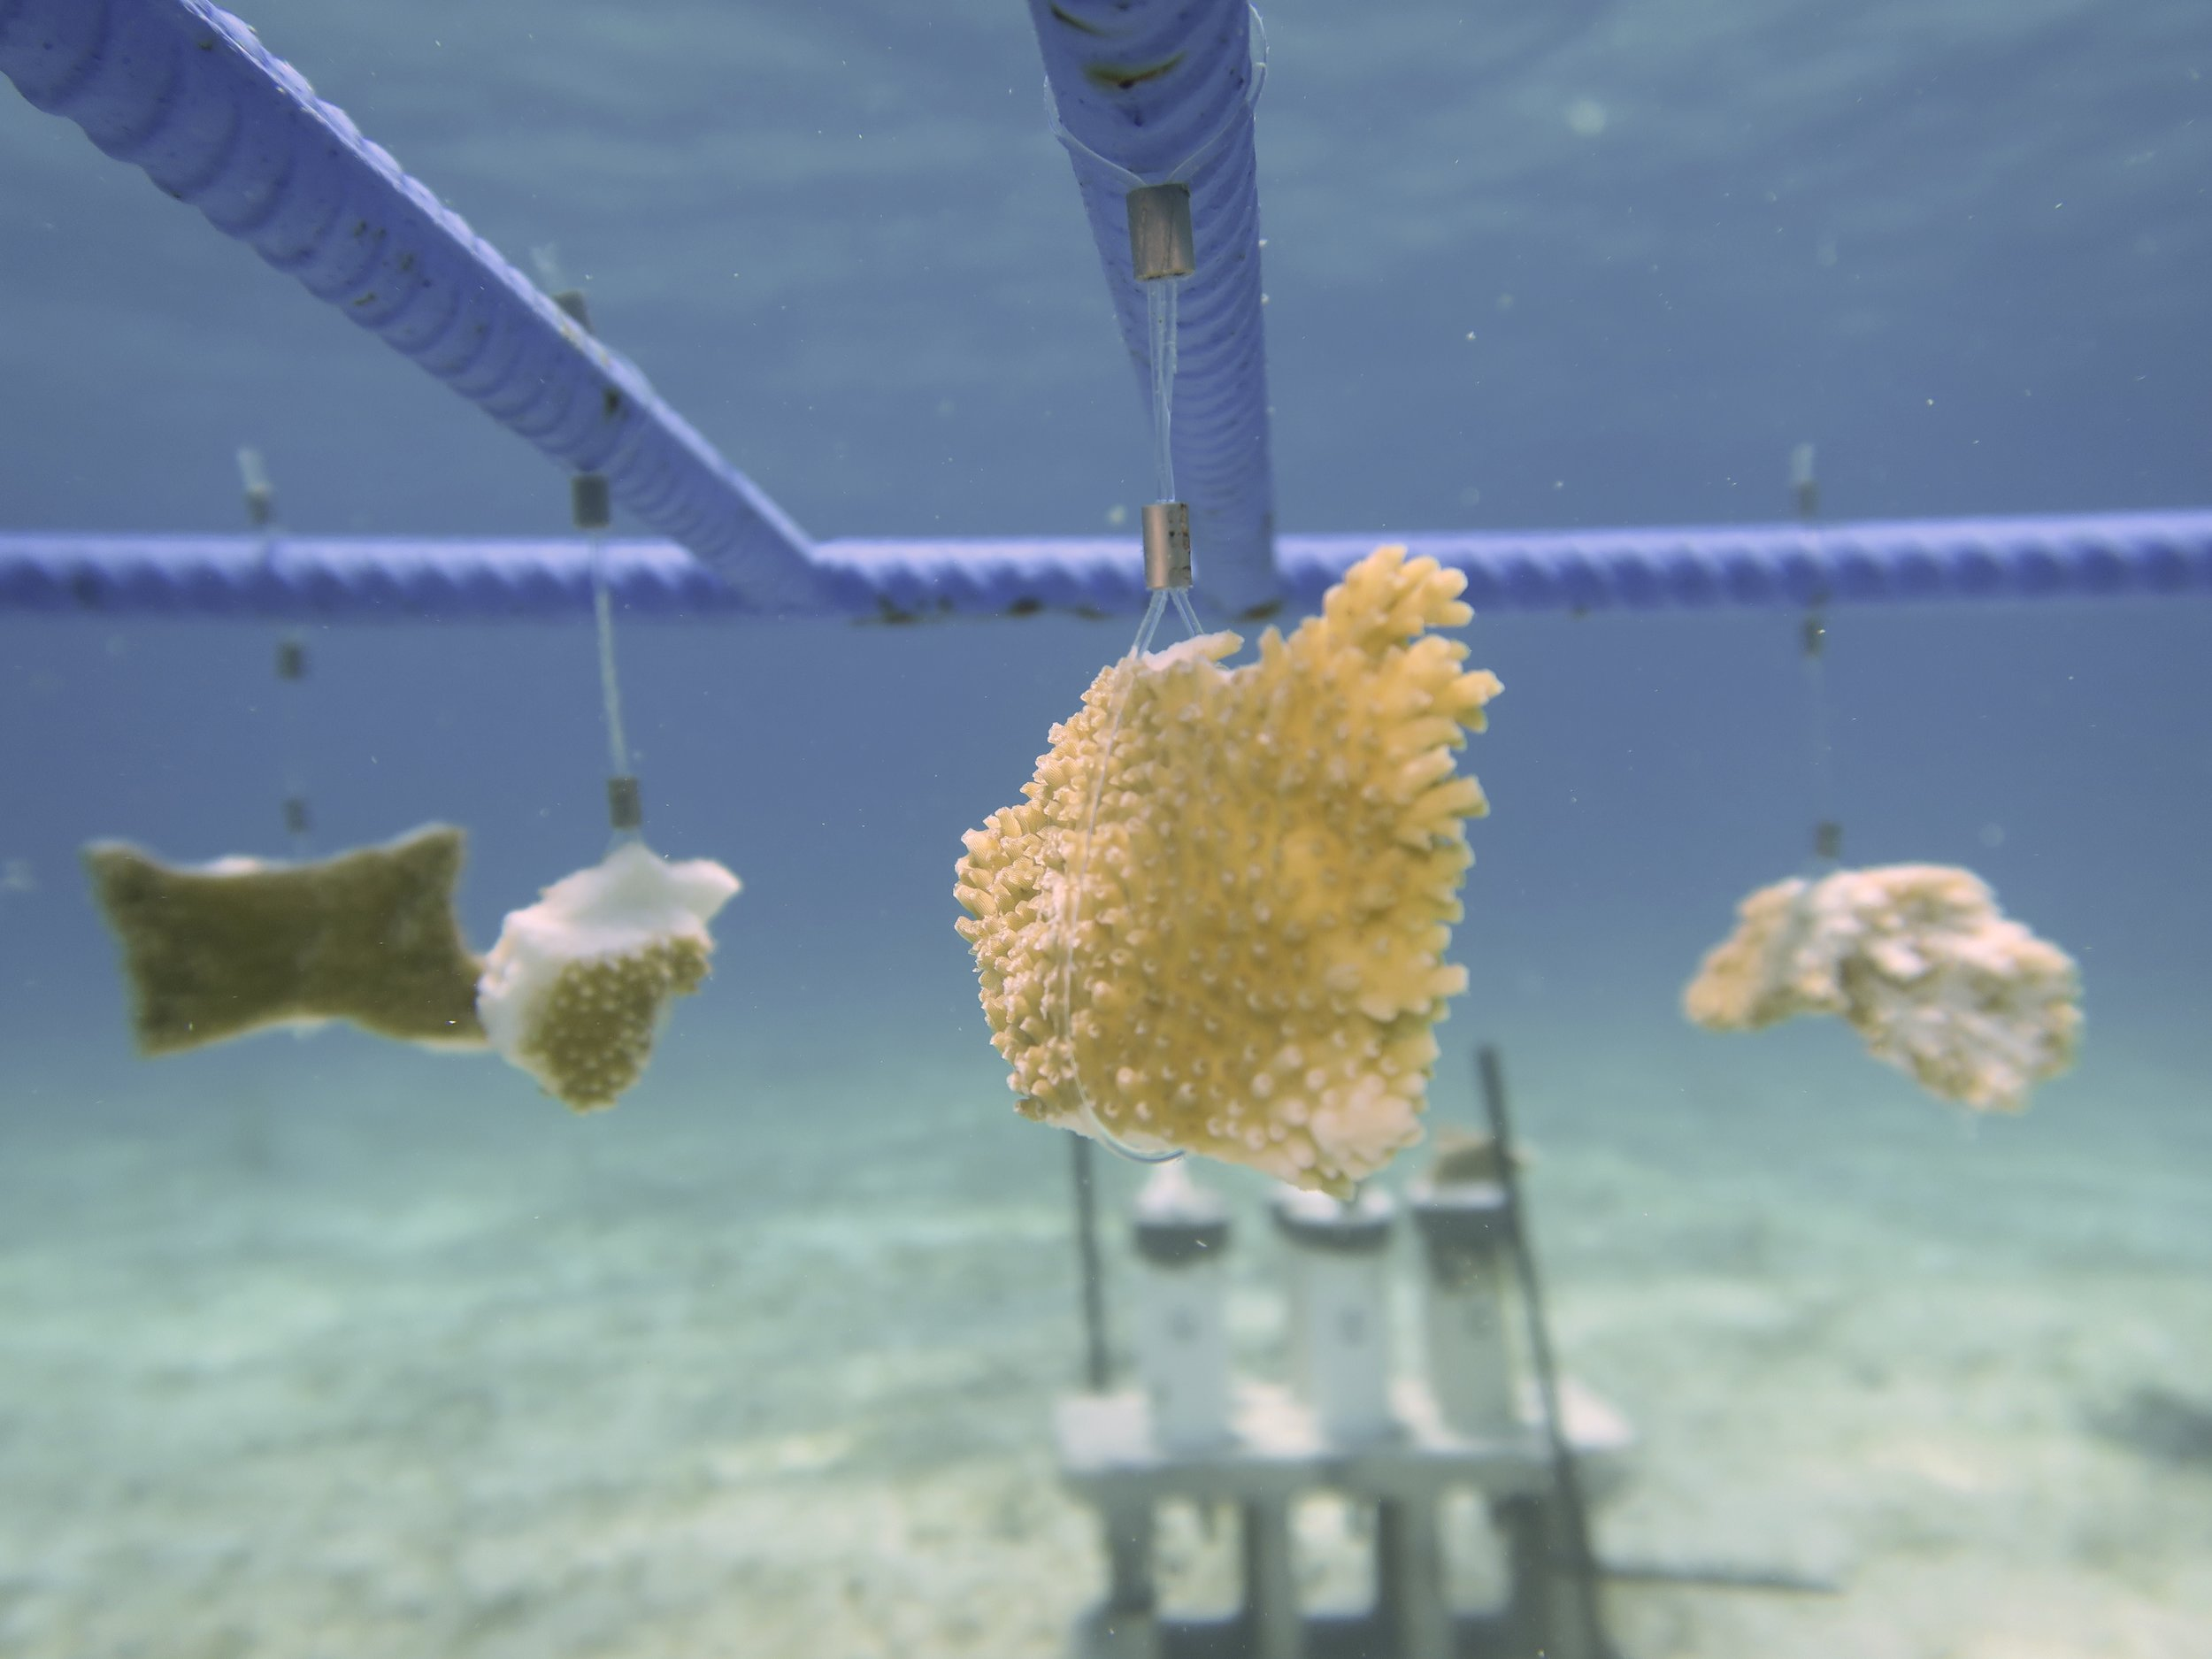 Elkhorn coral fragments hang from the rebar structure at the new shallow water nursery site.